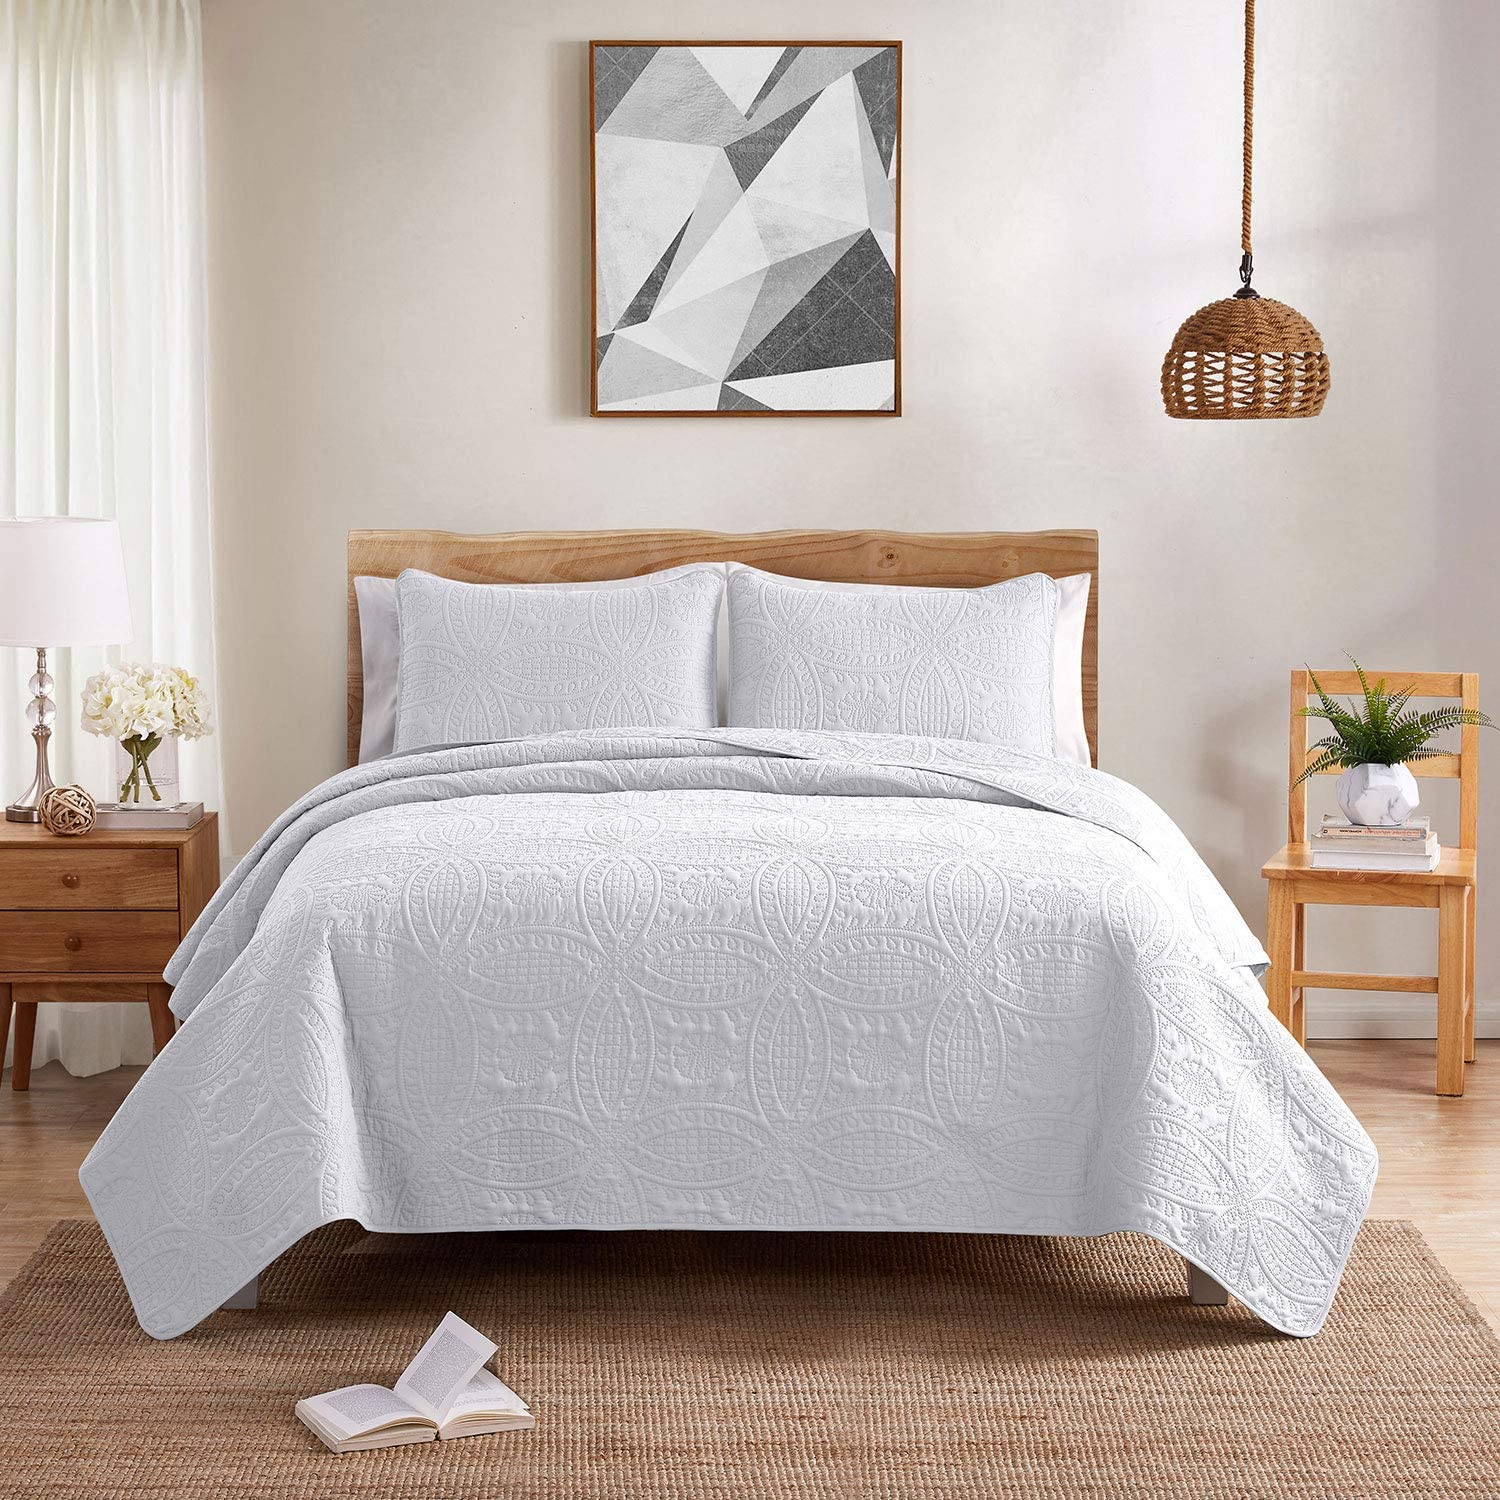 Country Club Embossed Quilted Bedspread Set Cream 240x260cm Amazon Co Uk Kitchen Home